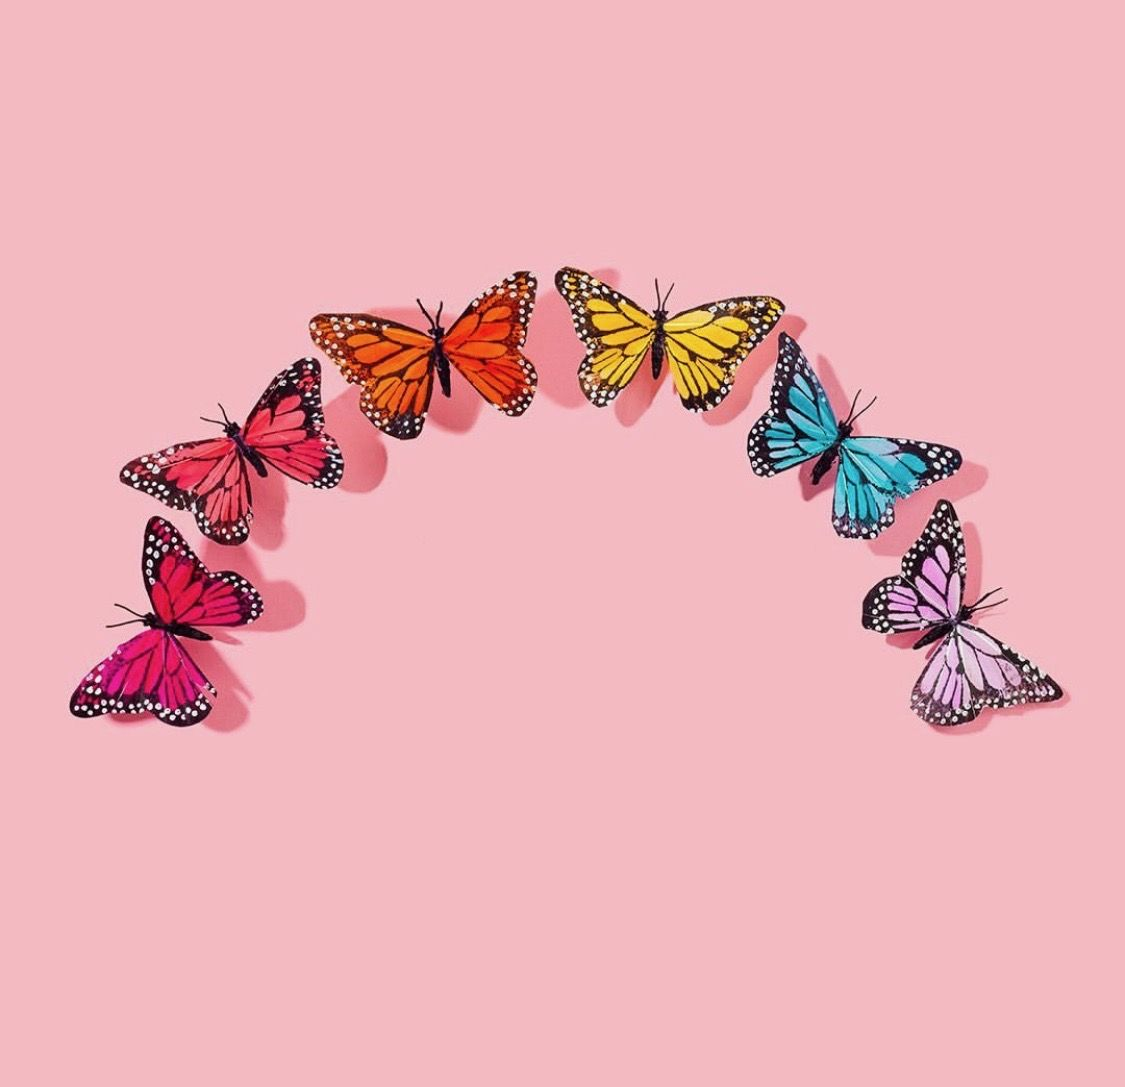 Wallpaper Butterfly Aesthetic Tumblr - Download Free Mock-up